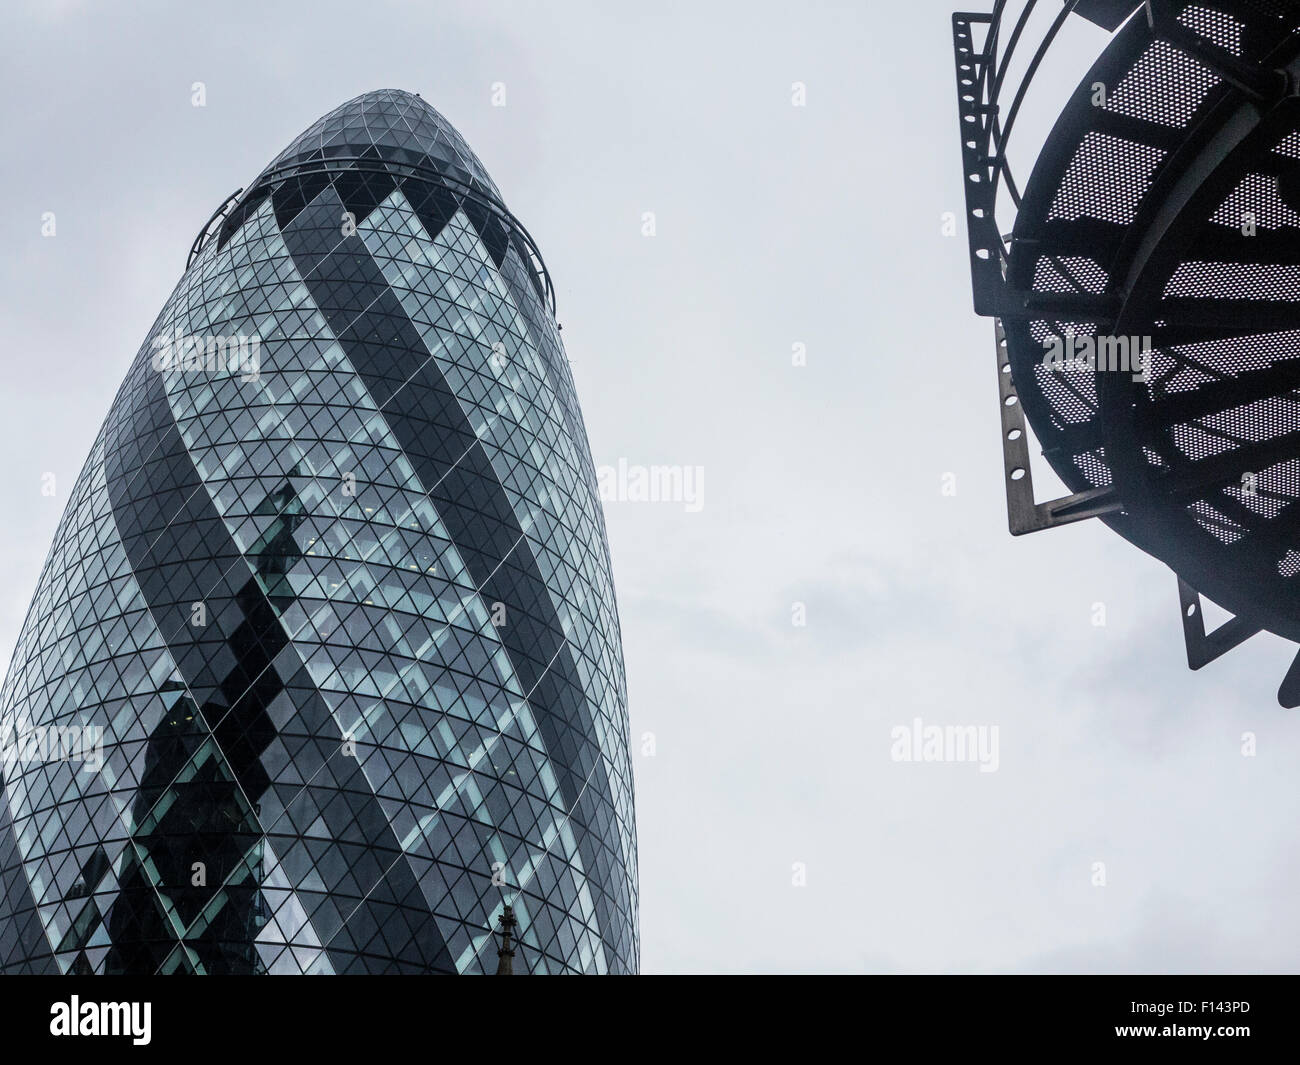 stormy skies and stormy markets over the Gherkin and the city of london financial district - Stock Image